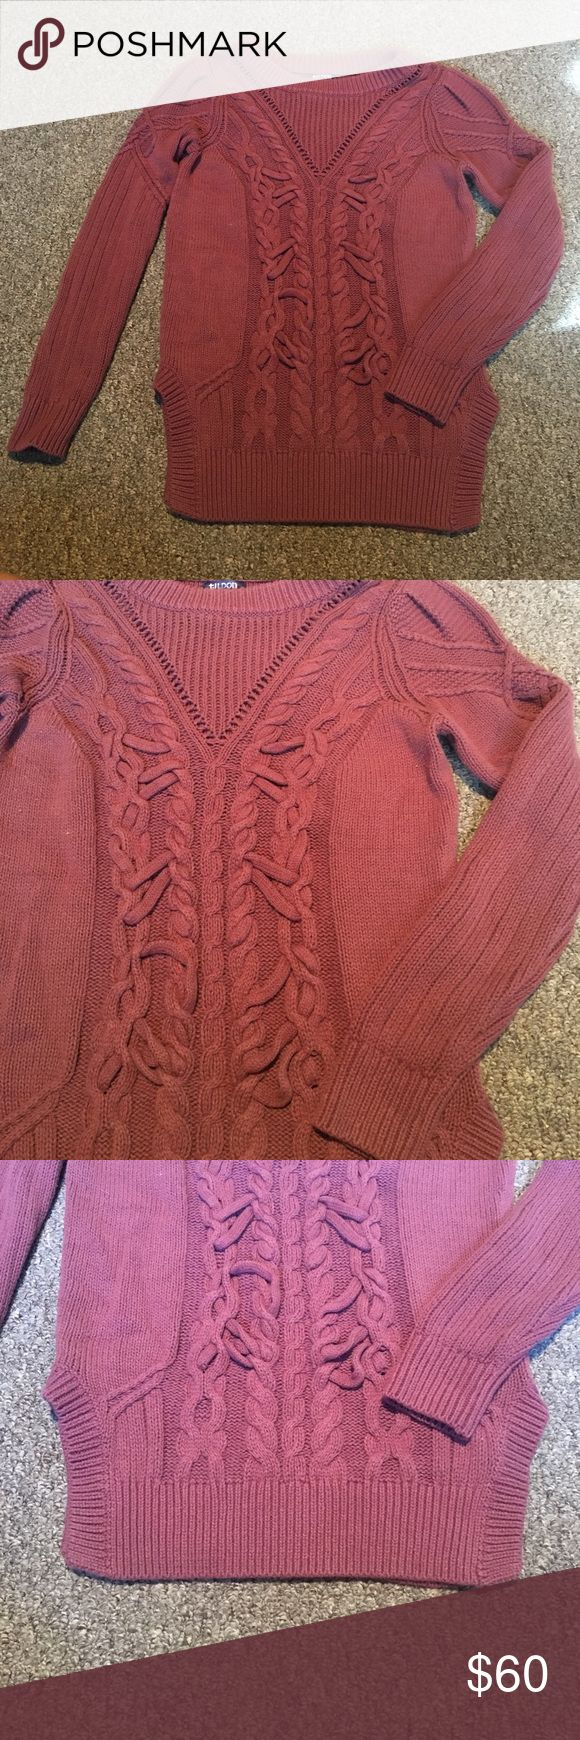 CHUNKY KNIT SWEATER Like new condition. No flaws to report besides some minor snags as normal with knit. Amazing knit detail with rounded hem sides. Perfect sweater for fall. Bundle to save 💕 Tildon Sweaters Crew & Scoop Necks